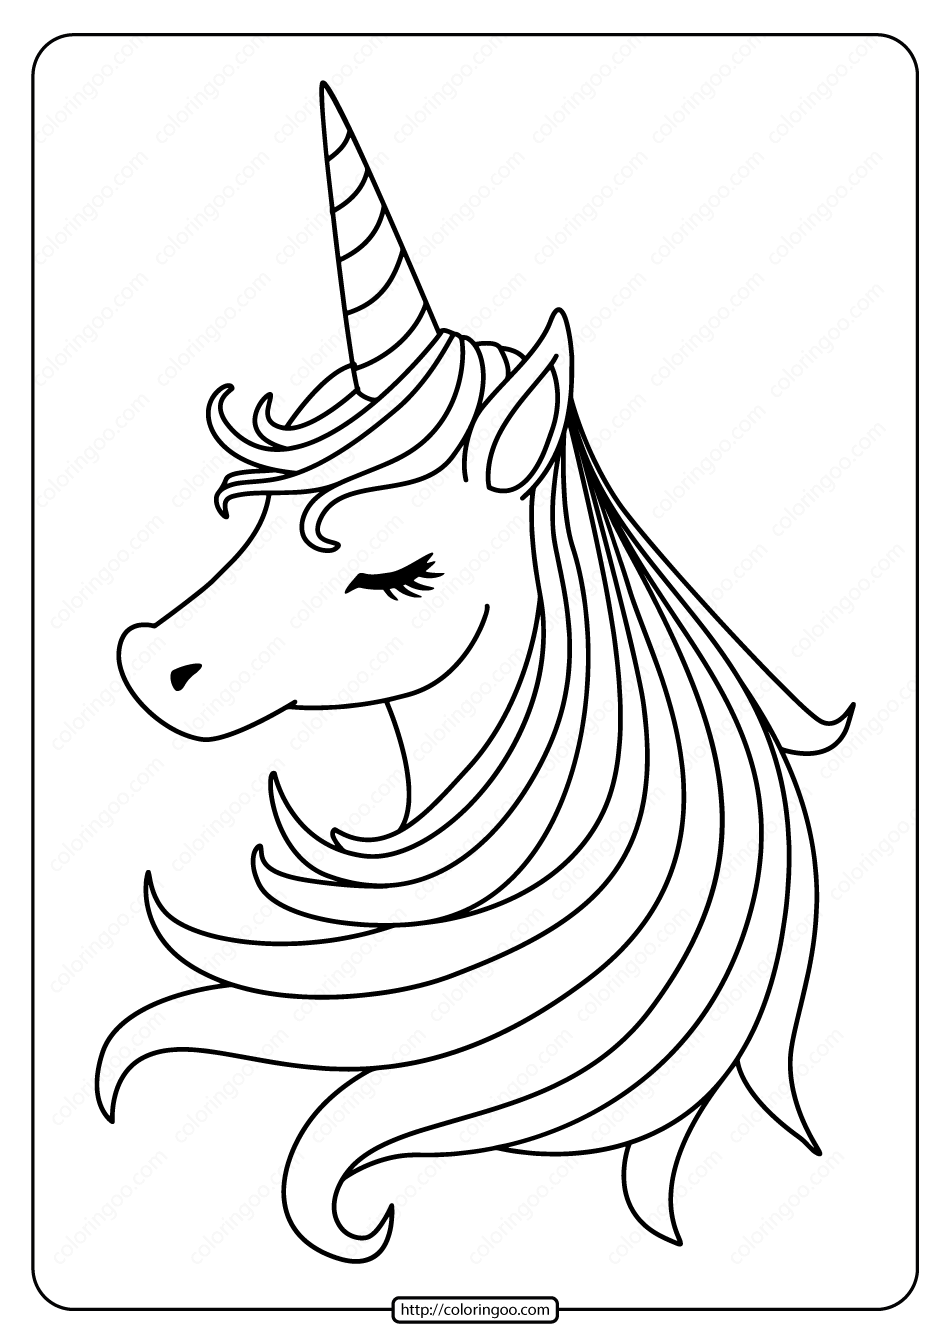 coloring page pdf hard coloring pages pdf coloring home pdf coloring page